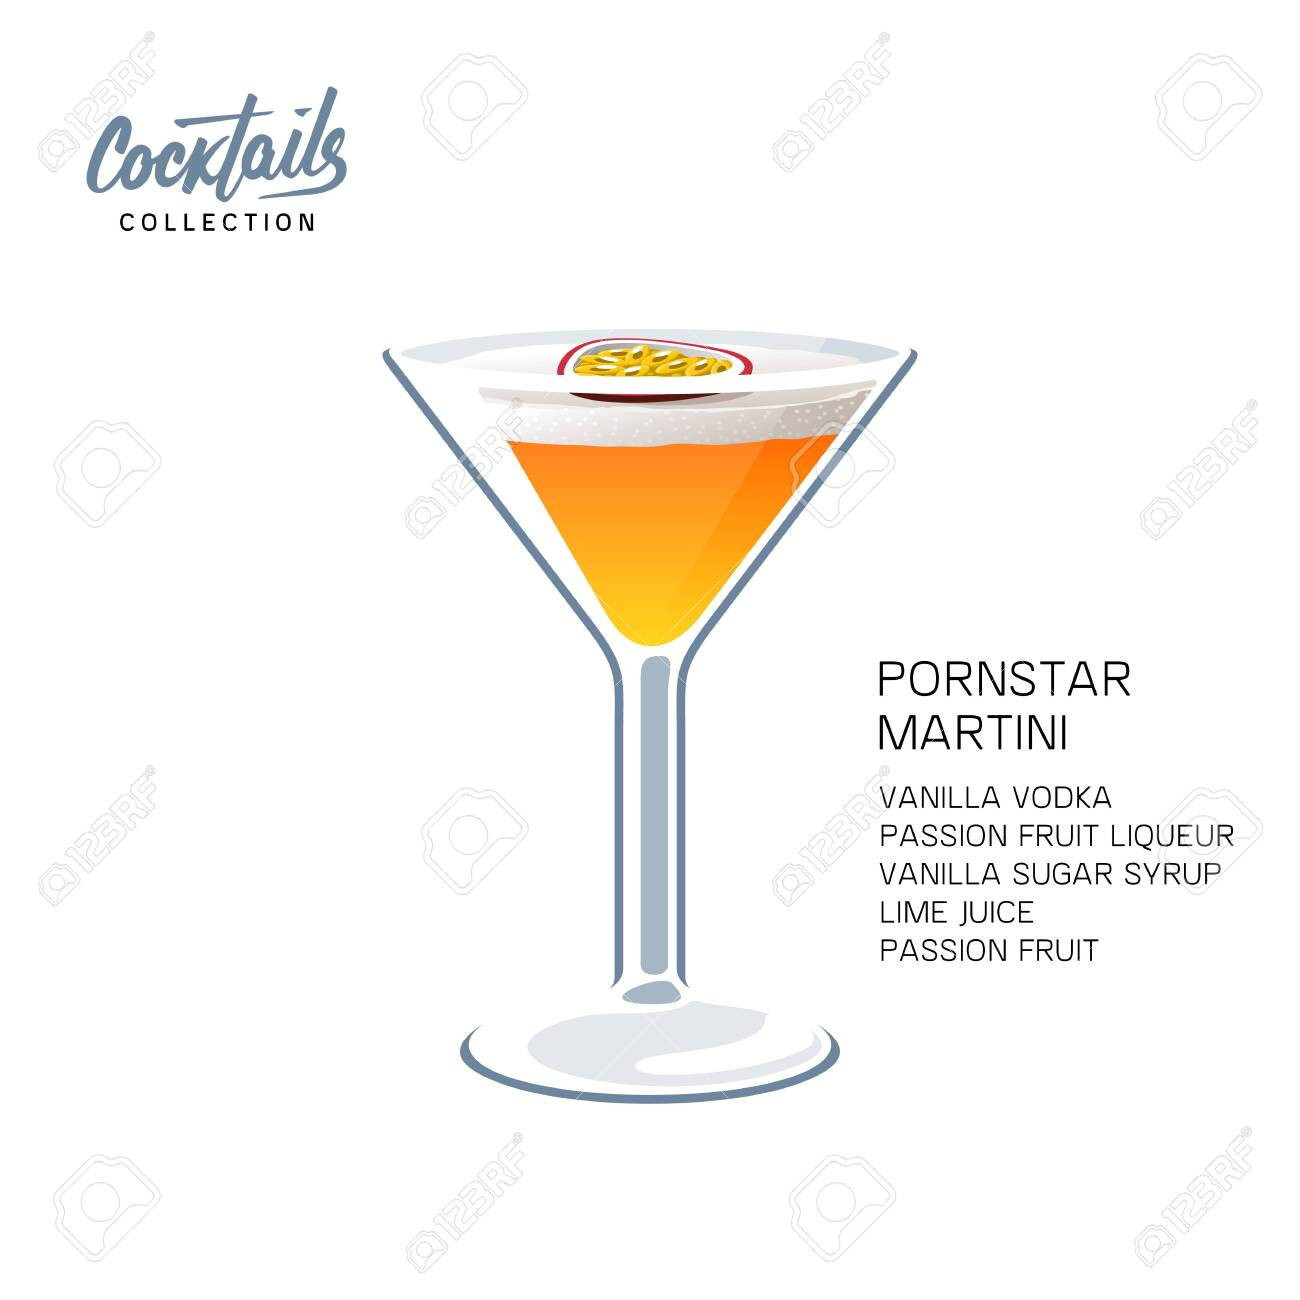 Pornstar Martini Cocktail Recipe Passion Fruit Vector Illustration Royalty Free Cliparts Vectors And Stock Illustration Image 152750729